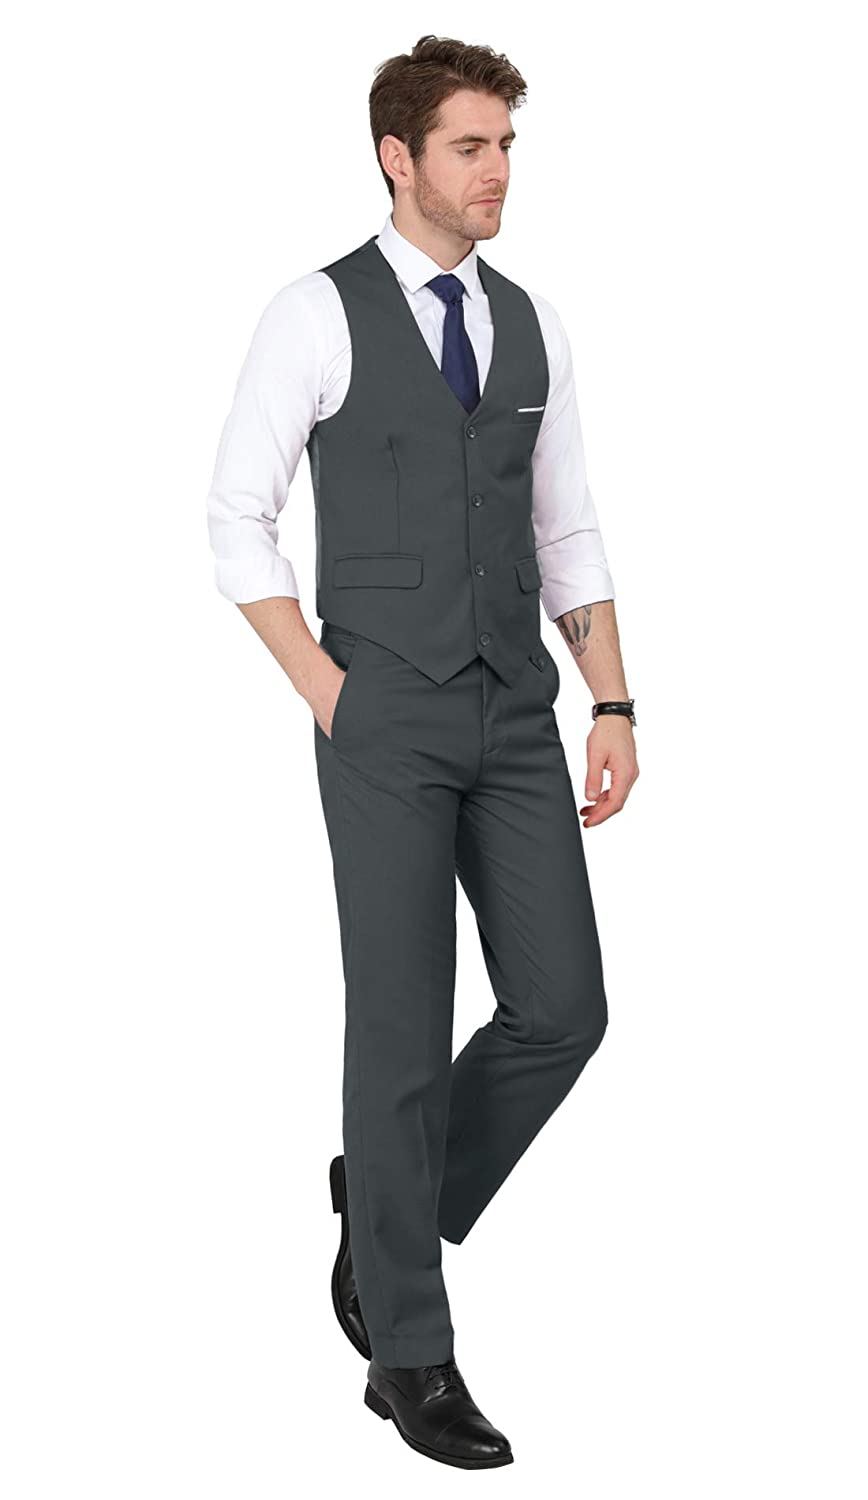 MAGE MALE Mens 3 Pieces Suit Elegant Solid One Button Slim Fit Single Breasted Party Blazer Vest Pants Set